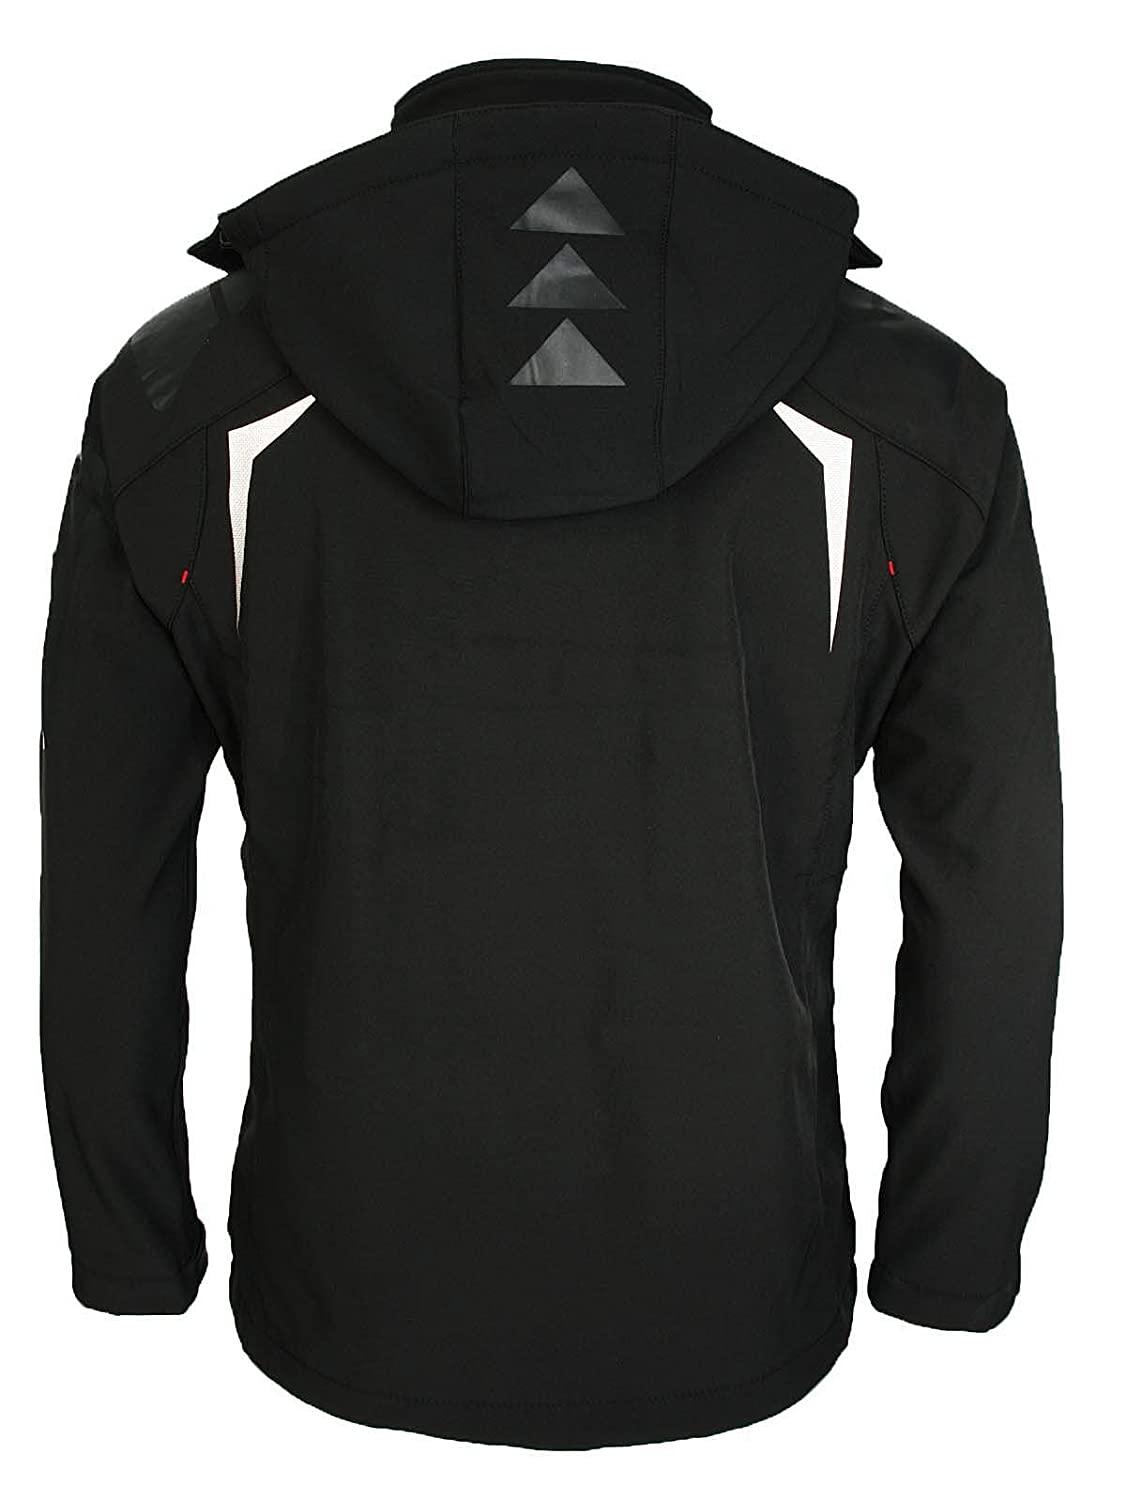 Geographical Norway Tambour Veste Softshell Homme Noir